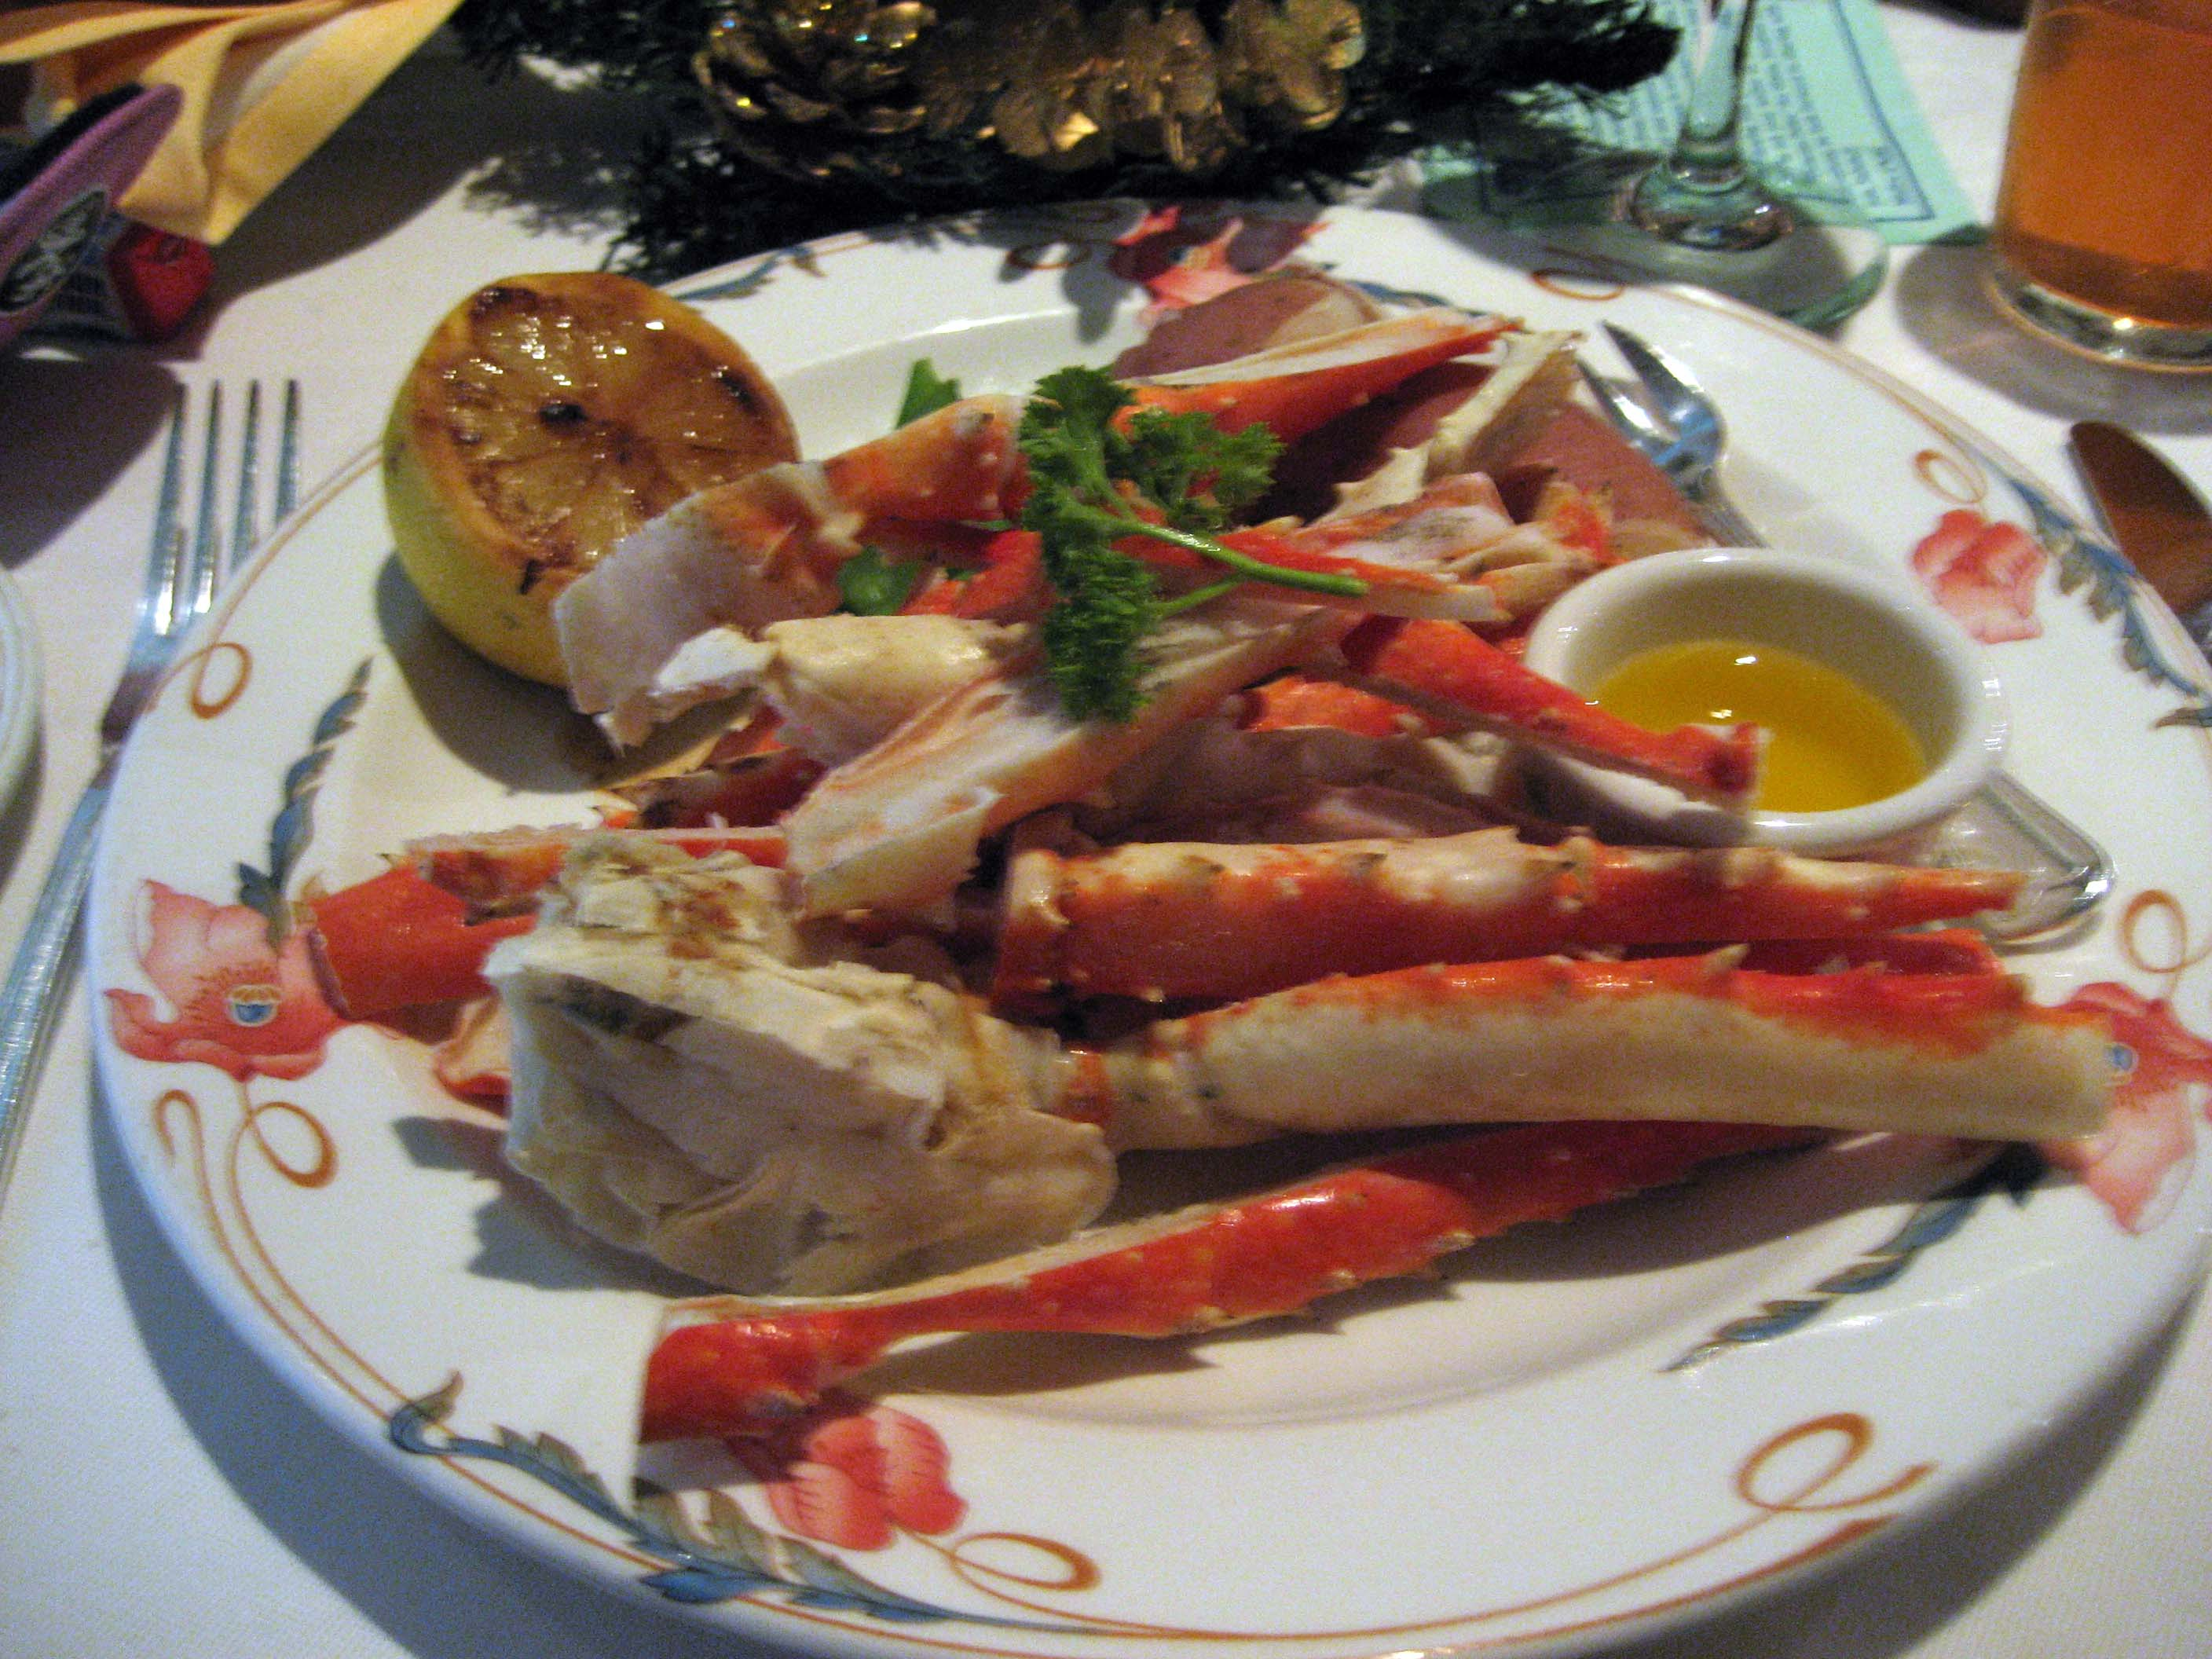 Kingcrab legs with Drawn butter